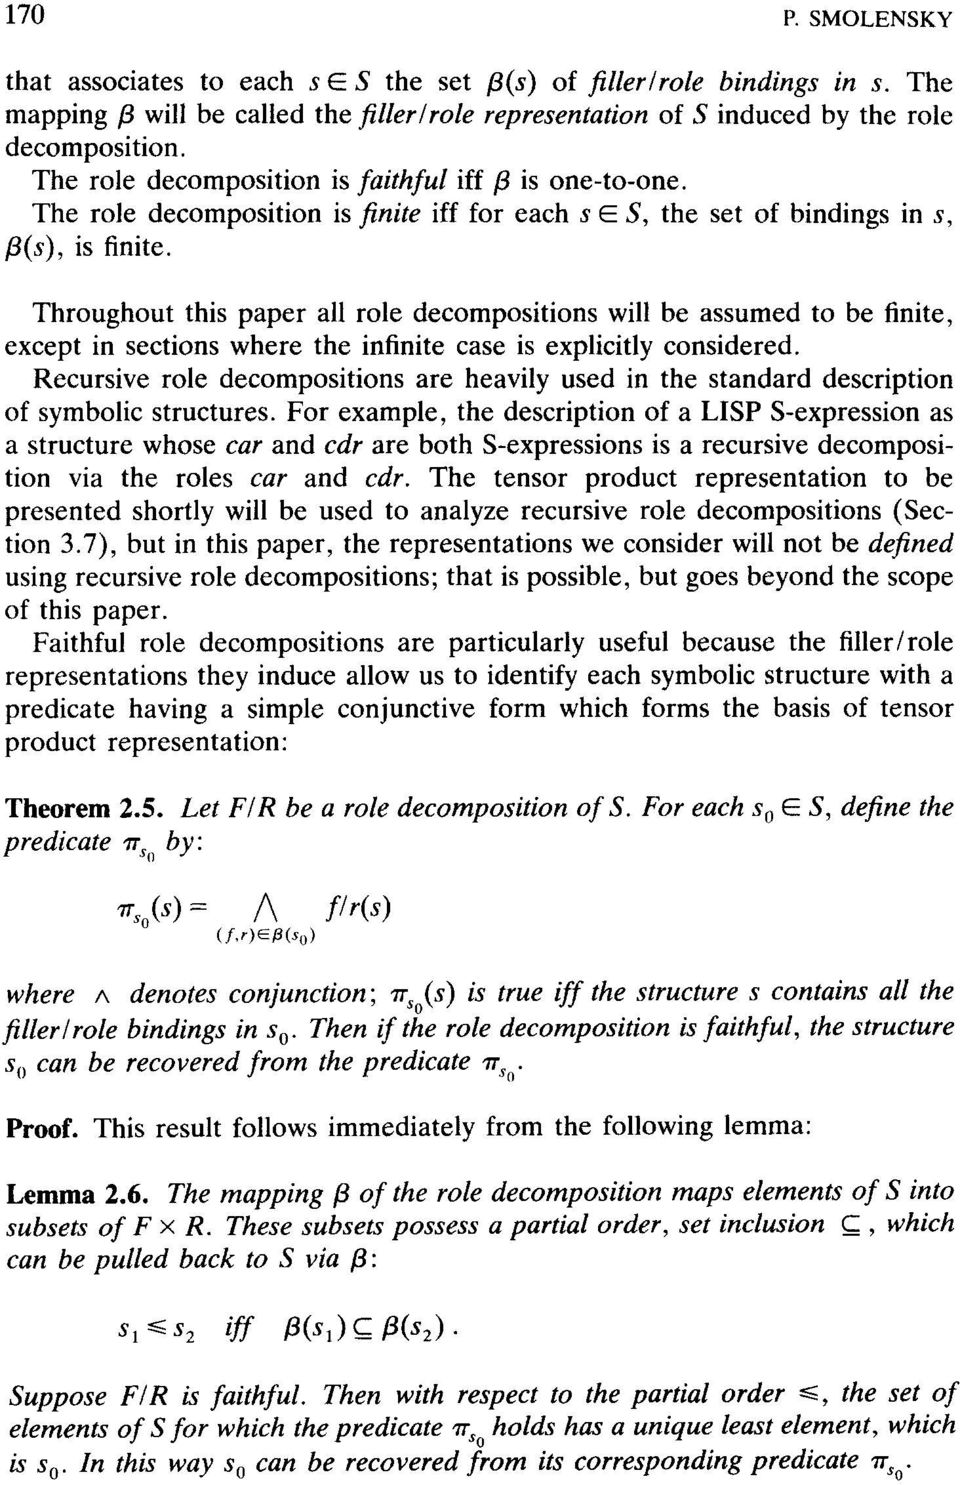 Throughout this paper all role decompositions will be assumed to be finite, except in sections where the infinite case is explicitly considered.